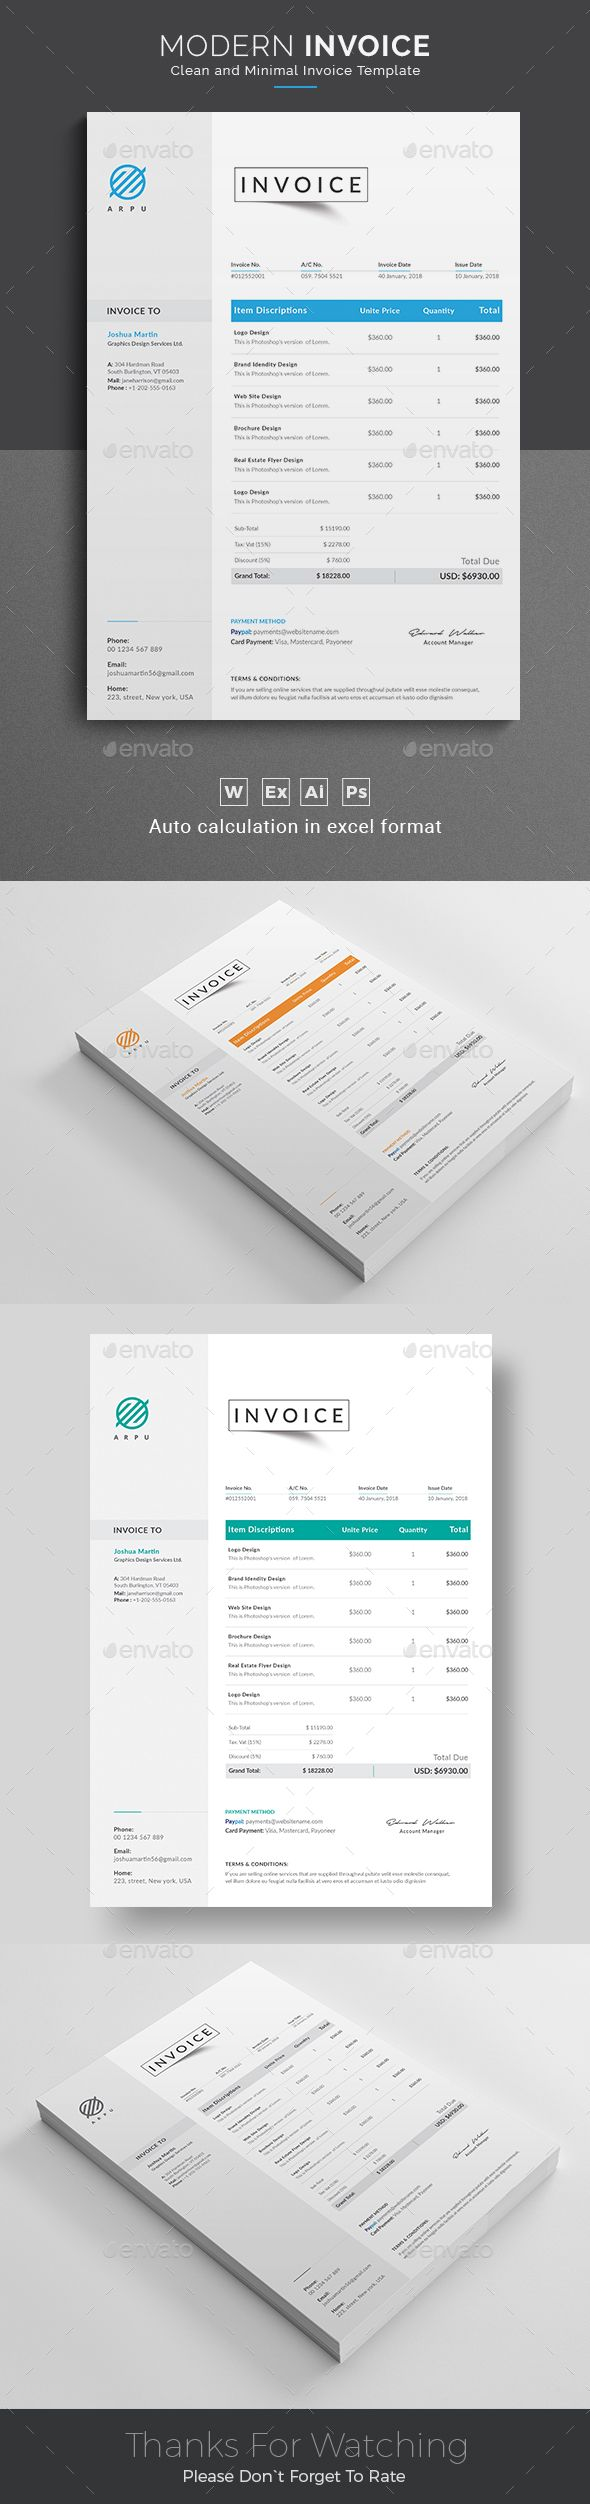 Invoice This Invoice will help you in your business to save time, organize you product data and customers info and easily generate the invoice by inserting the costumers ID and Item. It is designed for personal and corporate use.